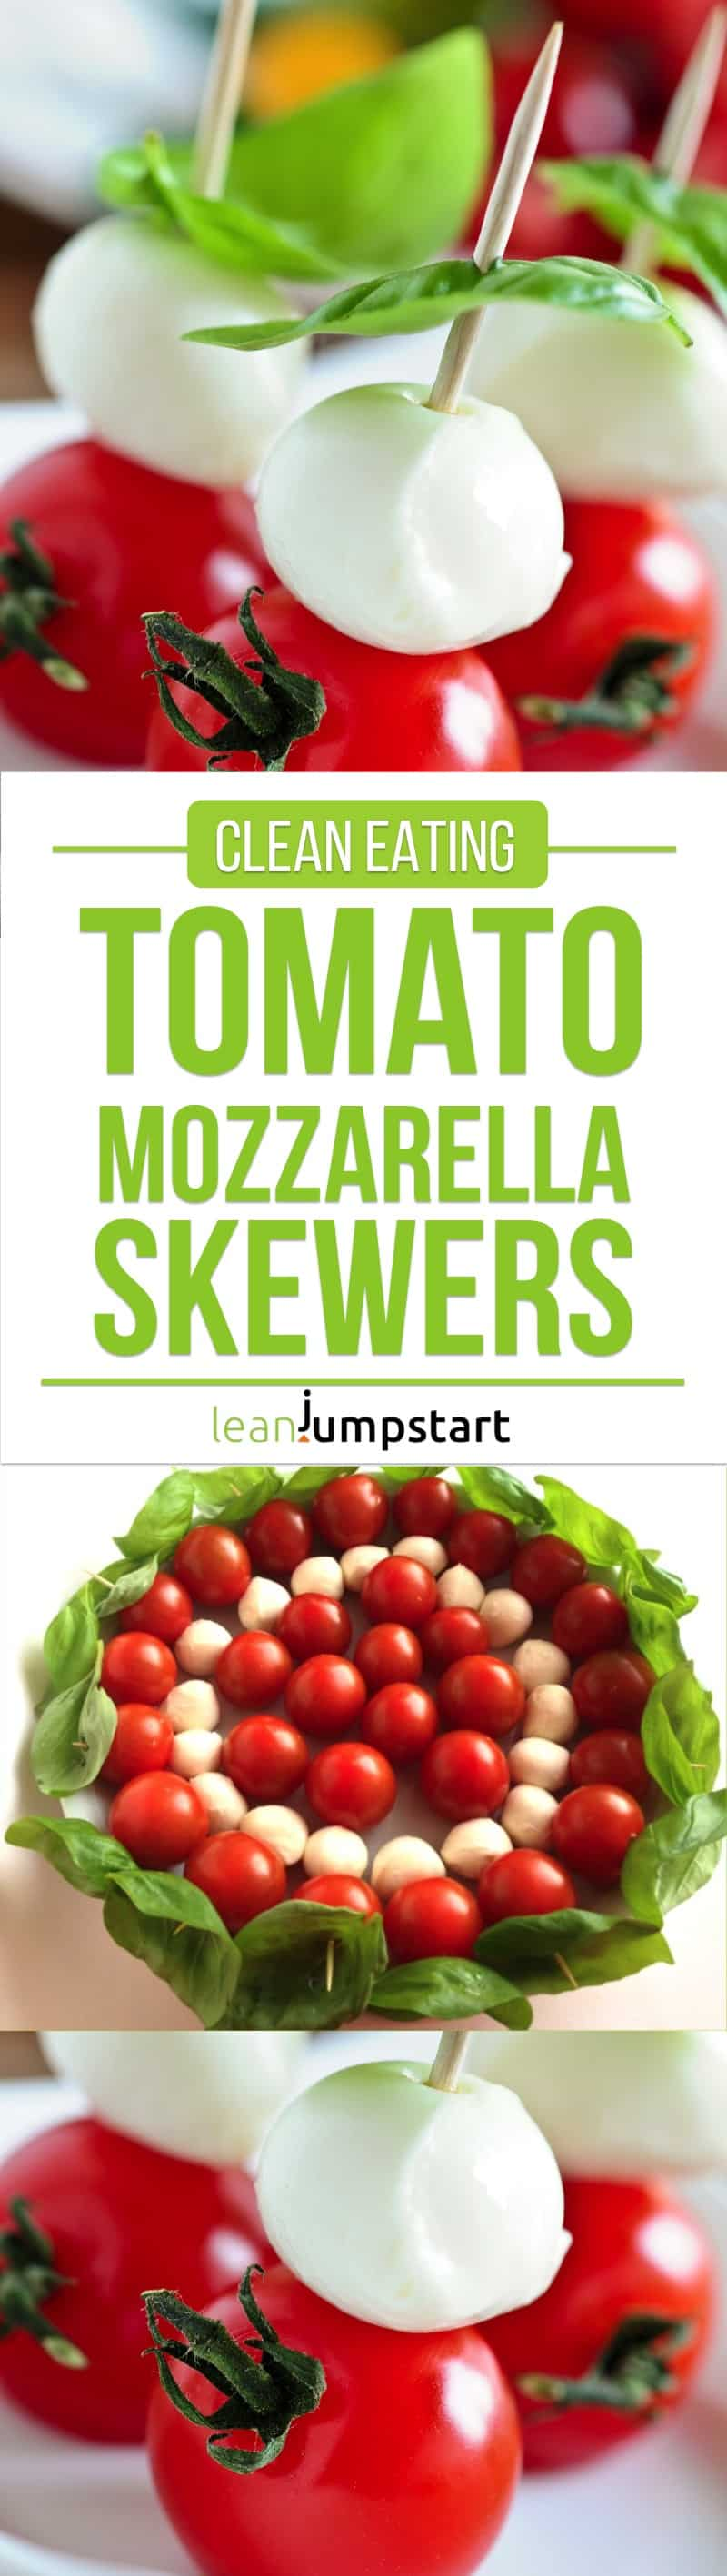 tomato mozzarella skewers: clean eating party snack idea - quick and easy